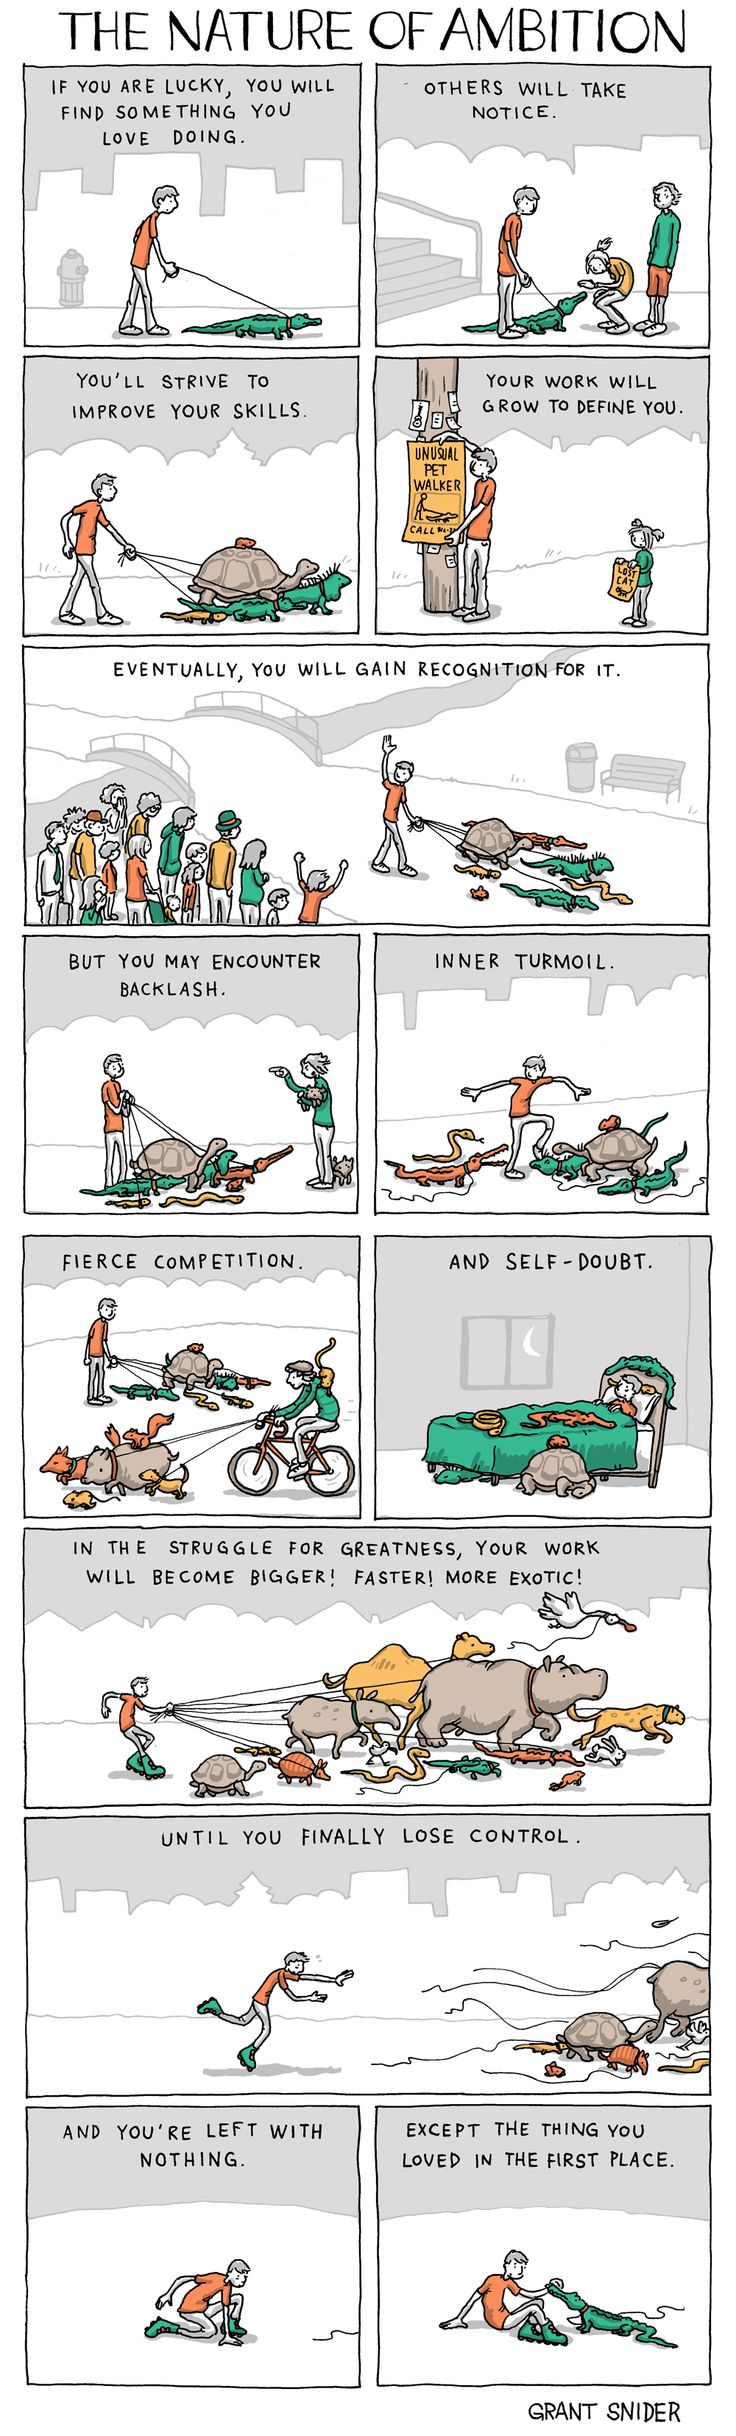 The Nature of Ambition by Grant Snider